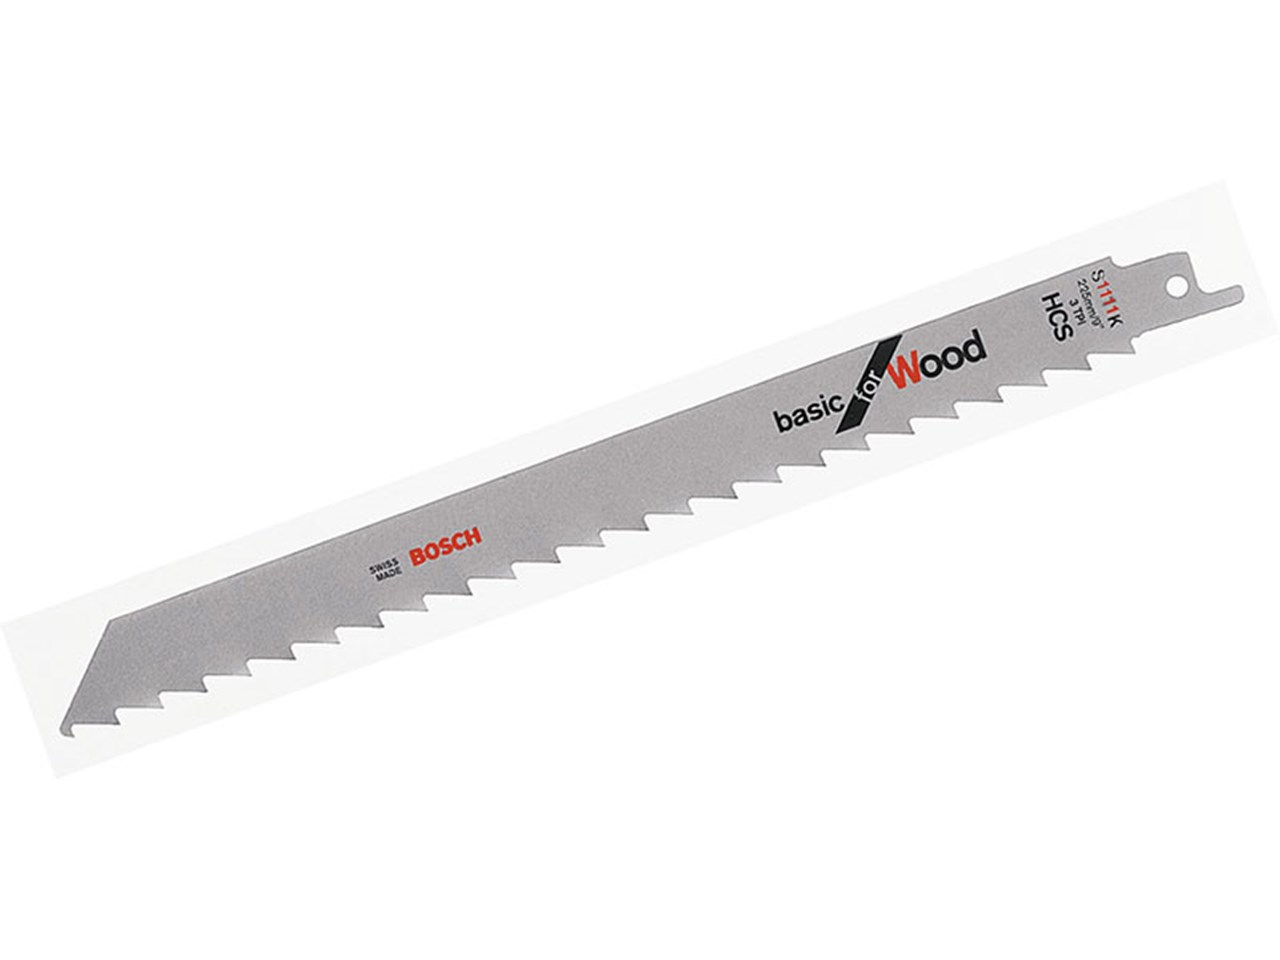 Bosch s1111k sabre saw blades wood type 5pk keyboard keysfo Image collections